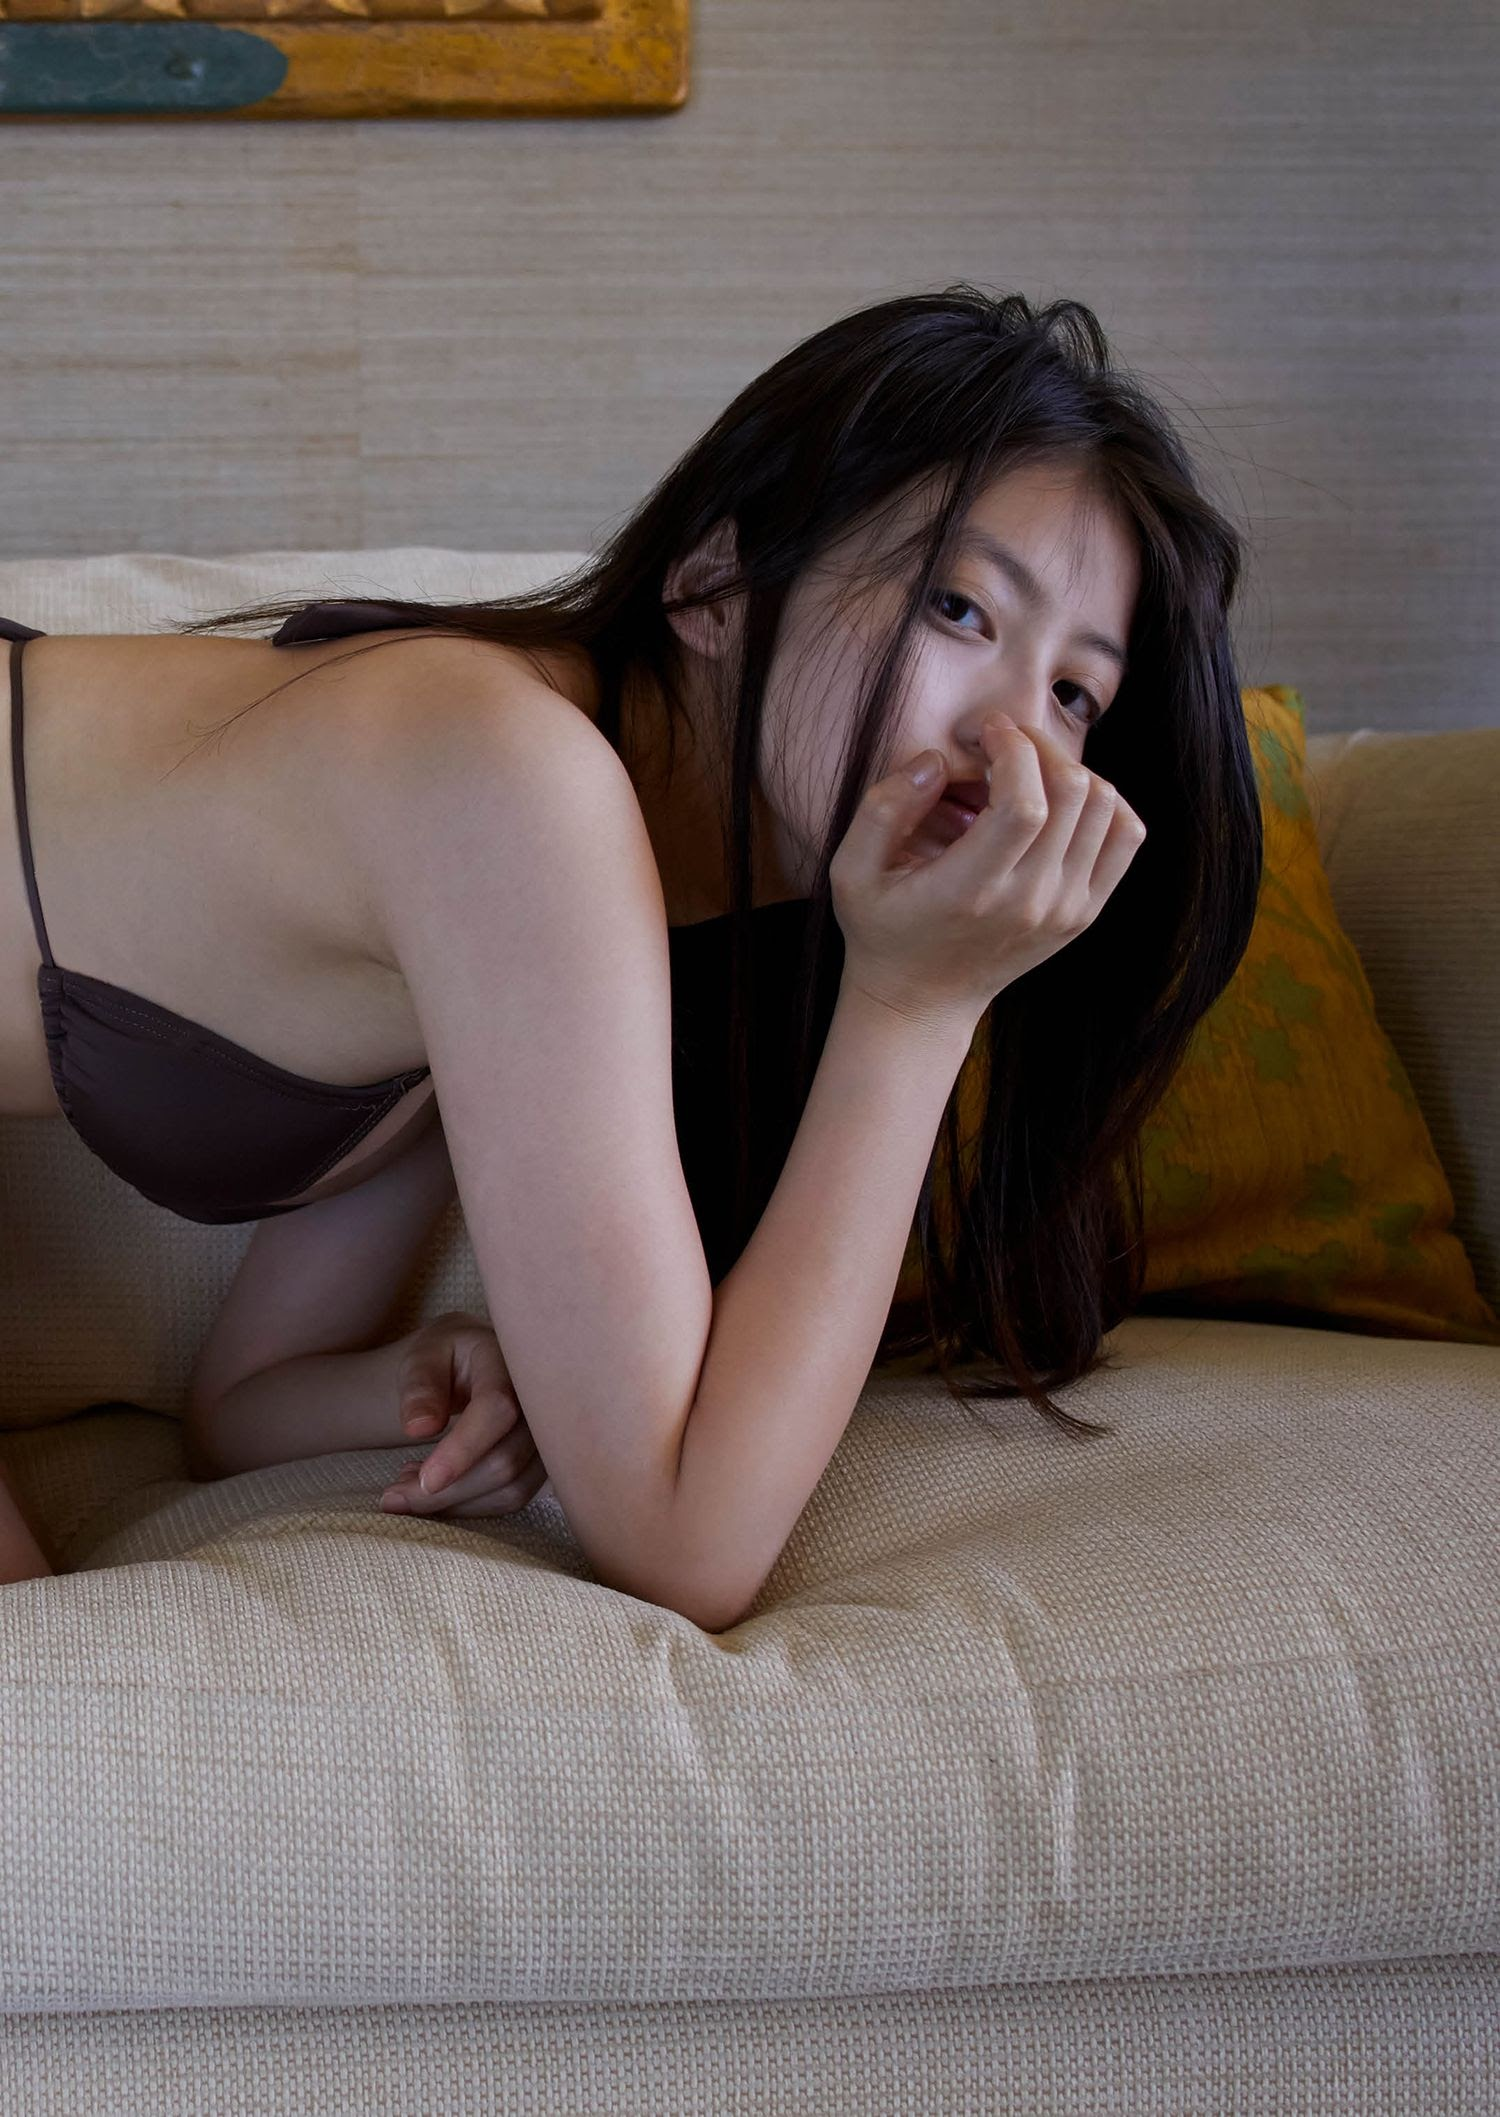 Without a doubt the youngest actress Mio Imada075